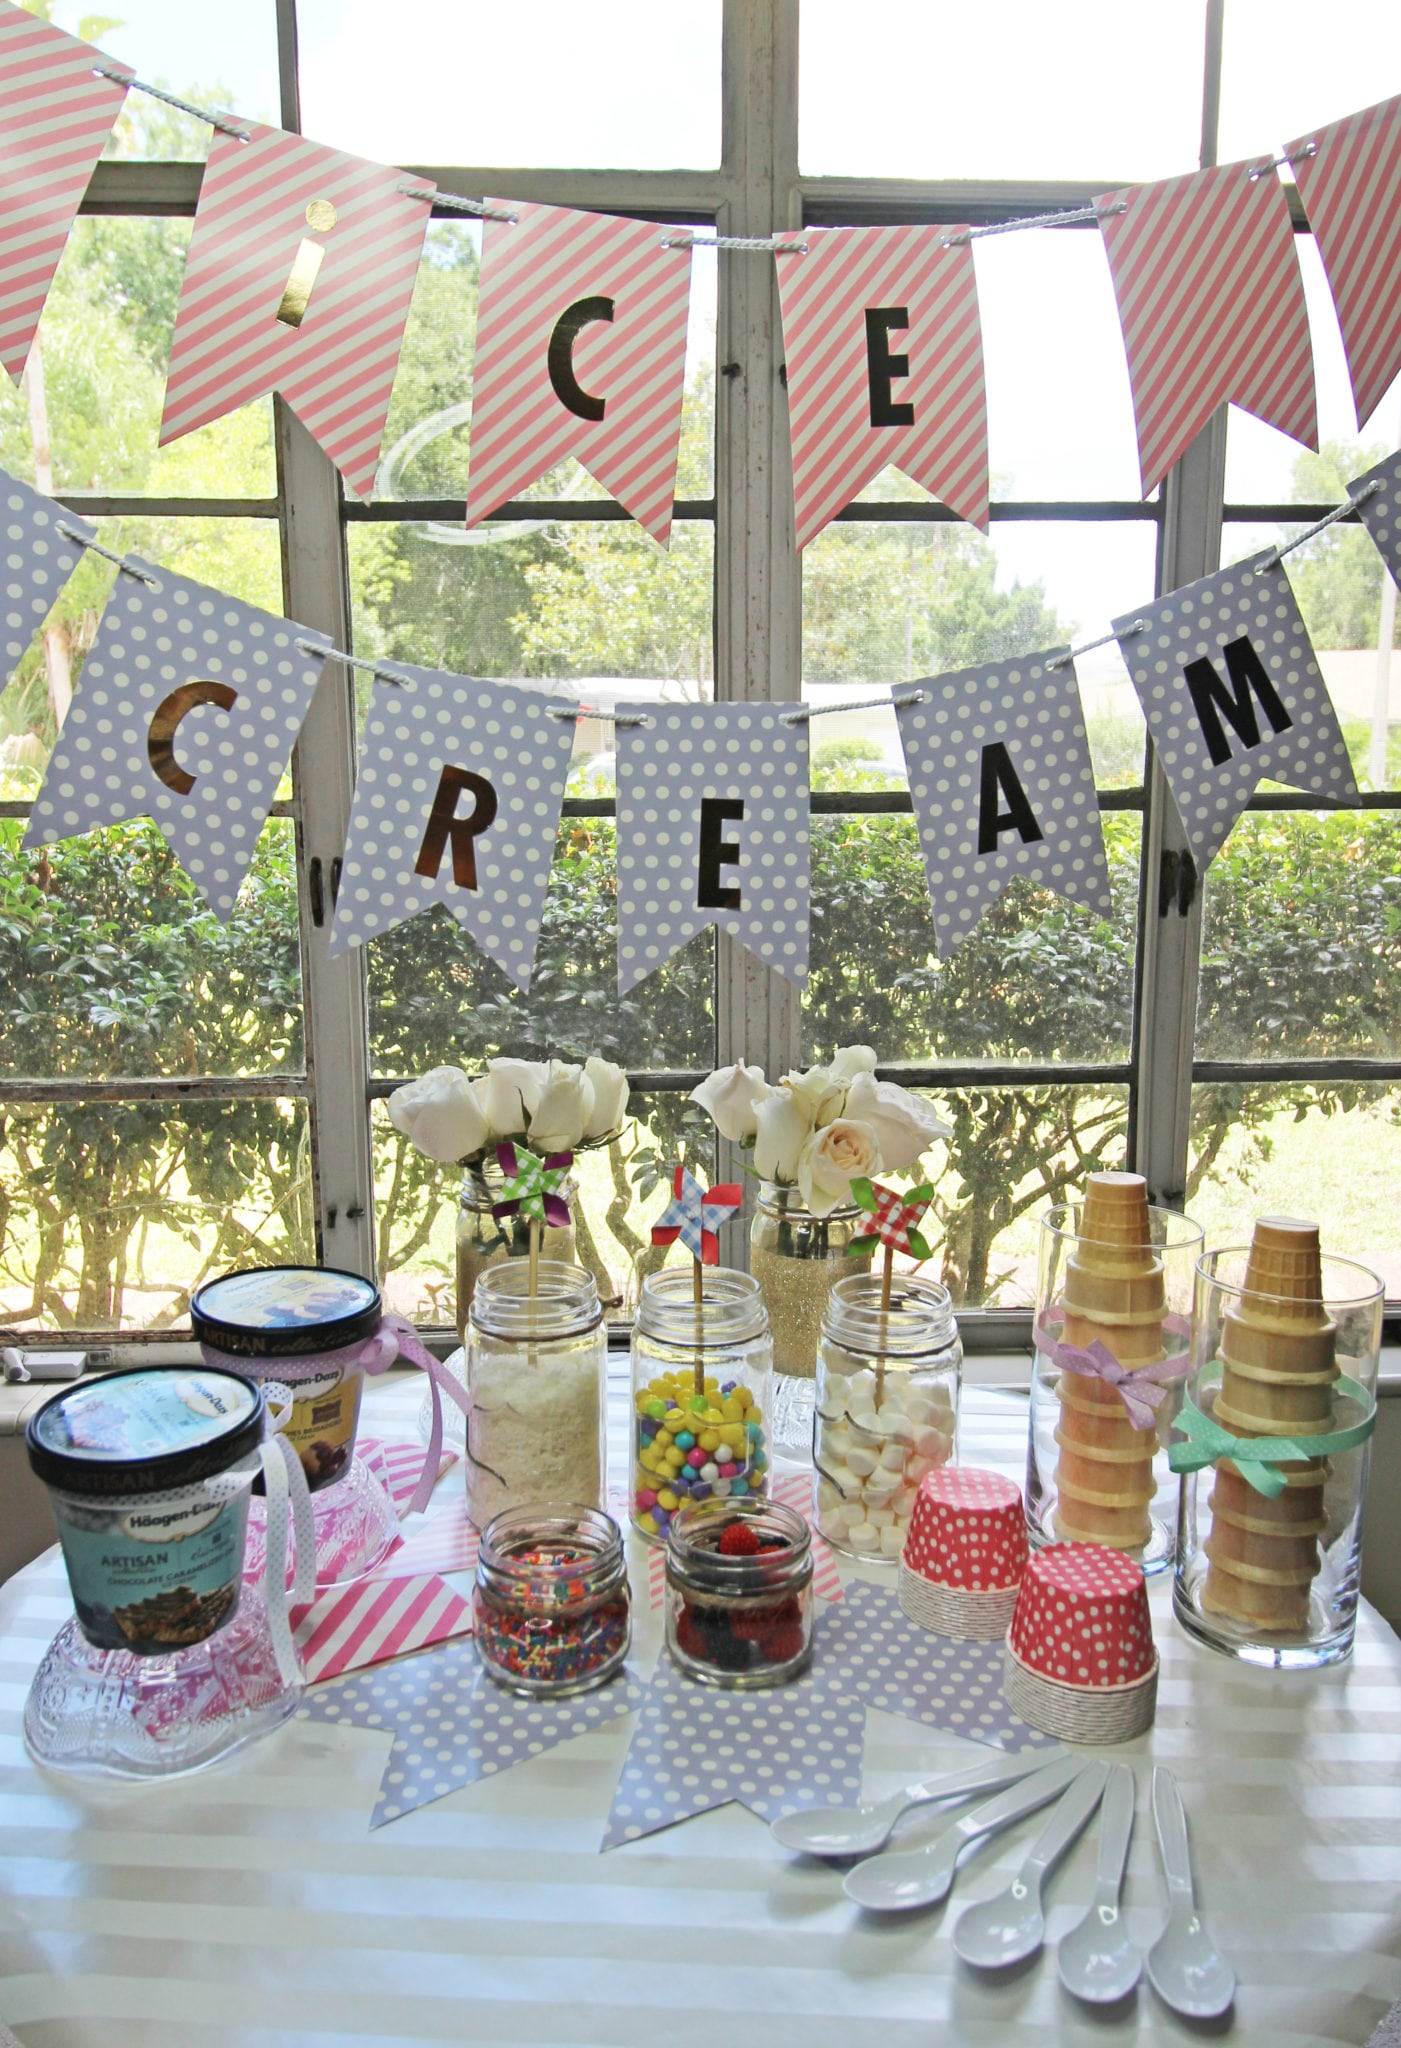 DIY Ice cream bar with candy from style and beauty blogger Mash Elle | summer desserts | ice cream party | summer treats